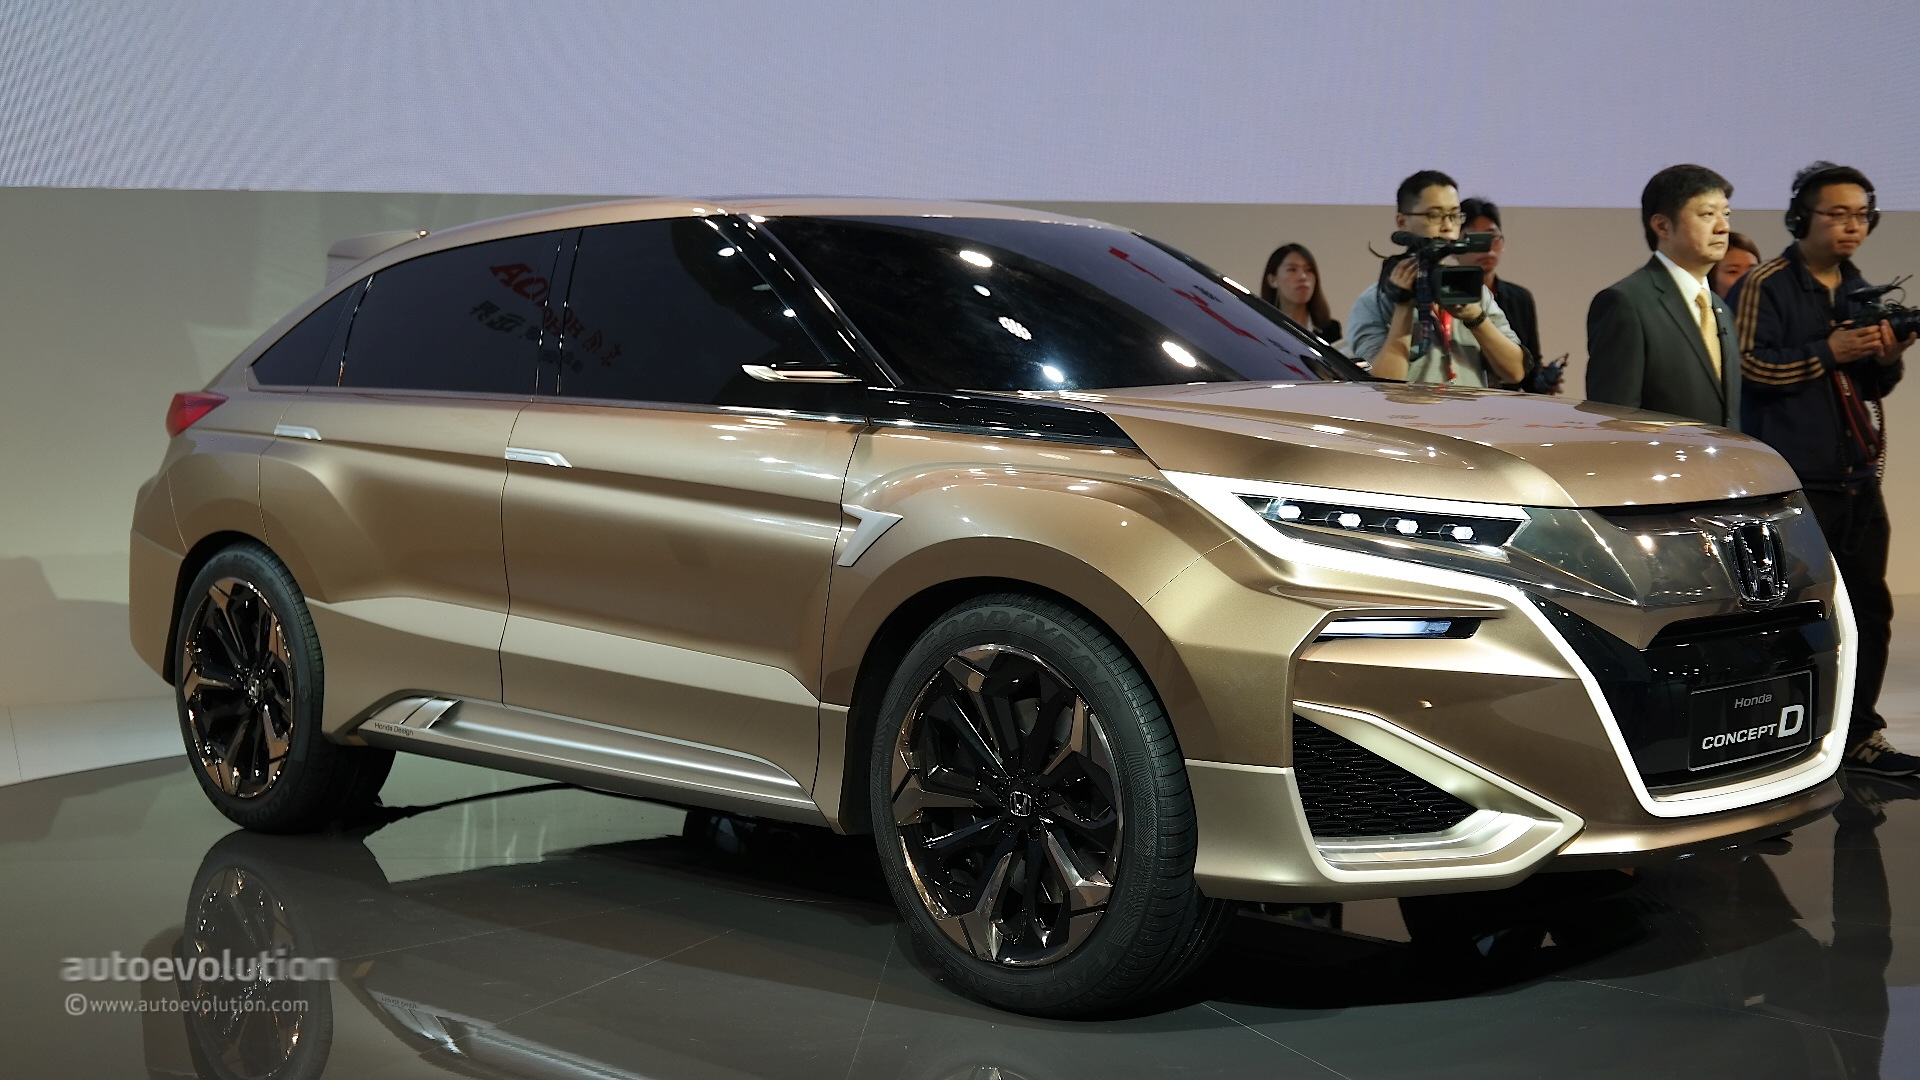 Dongfeng Honda Concept D Previews China Only Crossover At Shanghai